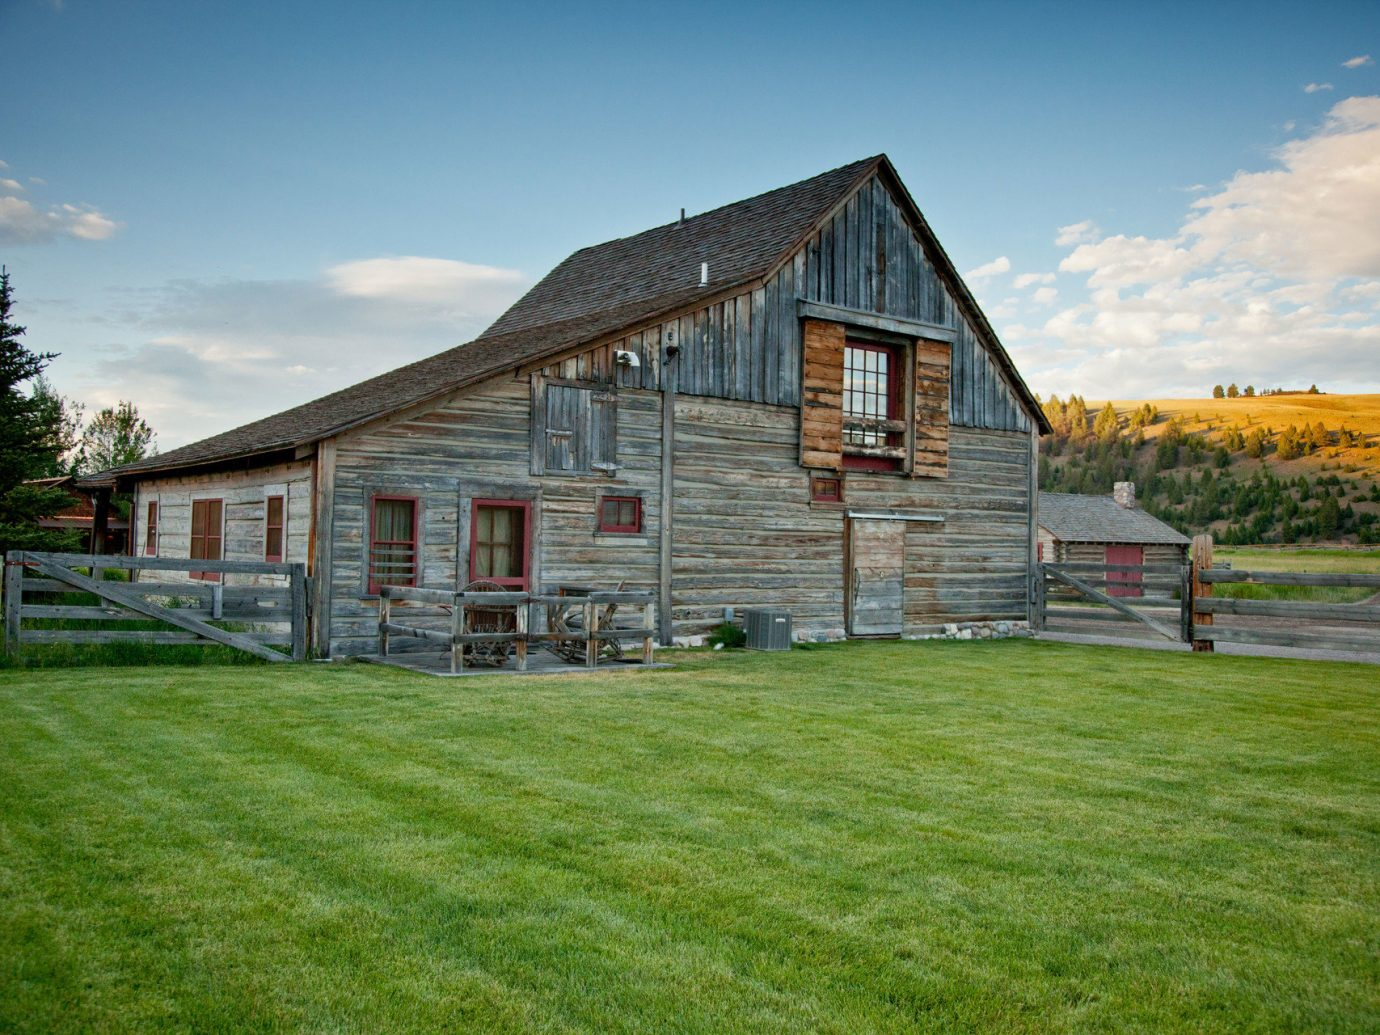 Cabin calm Exterior grass Greenery isolation log cabin Mountains Nature Outdoors remote Rustic serene trees Trip Ideas sky outdoor building house property home estate field residential area lawn barn real estate Farm farmhouse rural area cottage facade grassy siding backyard farm building lush